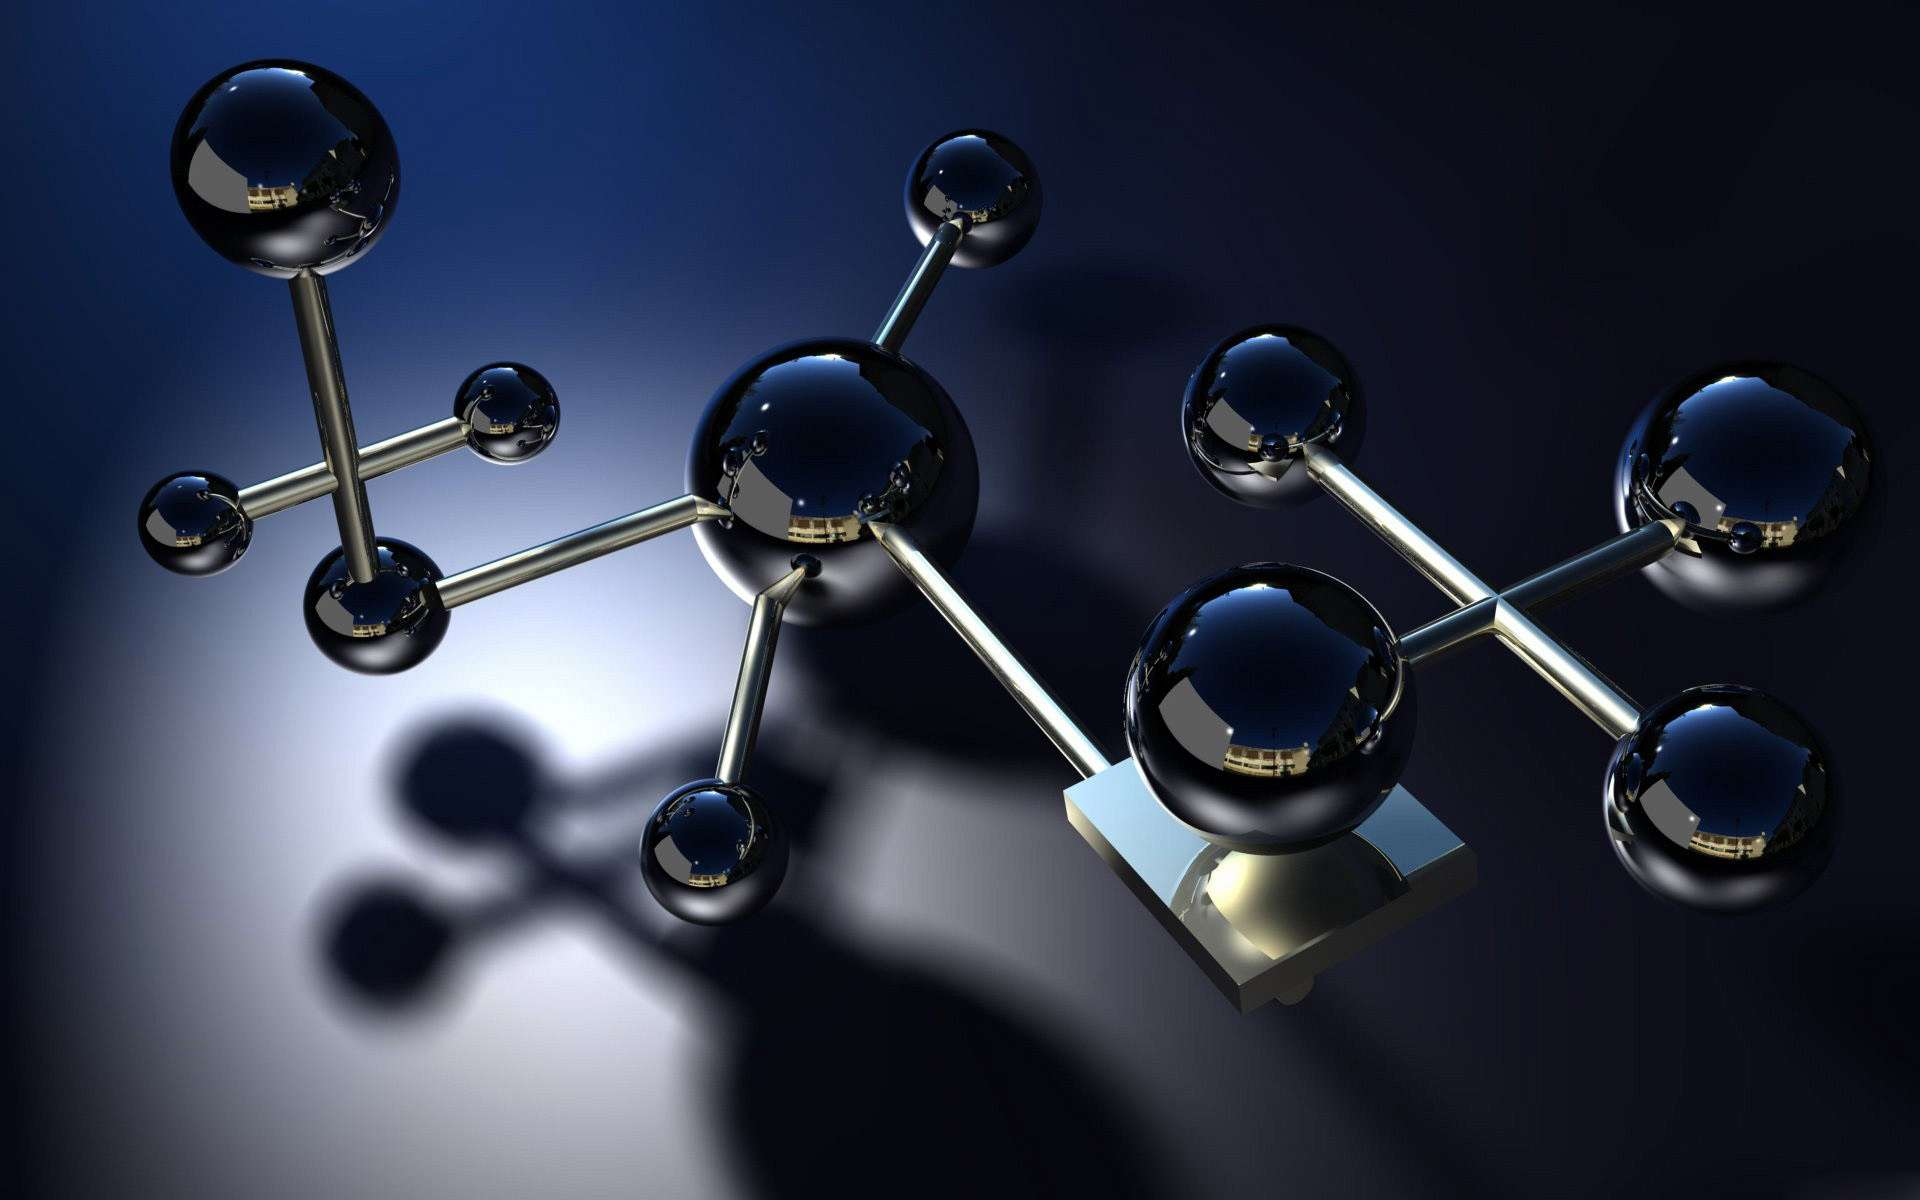 Physics And Chemistry Full HD Wallpaper Background Image